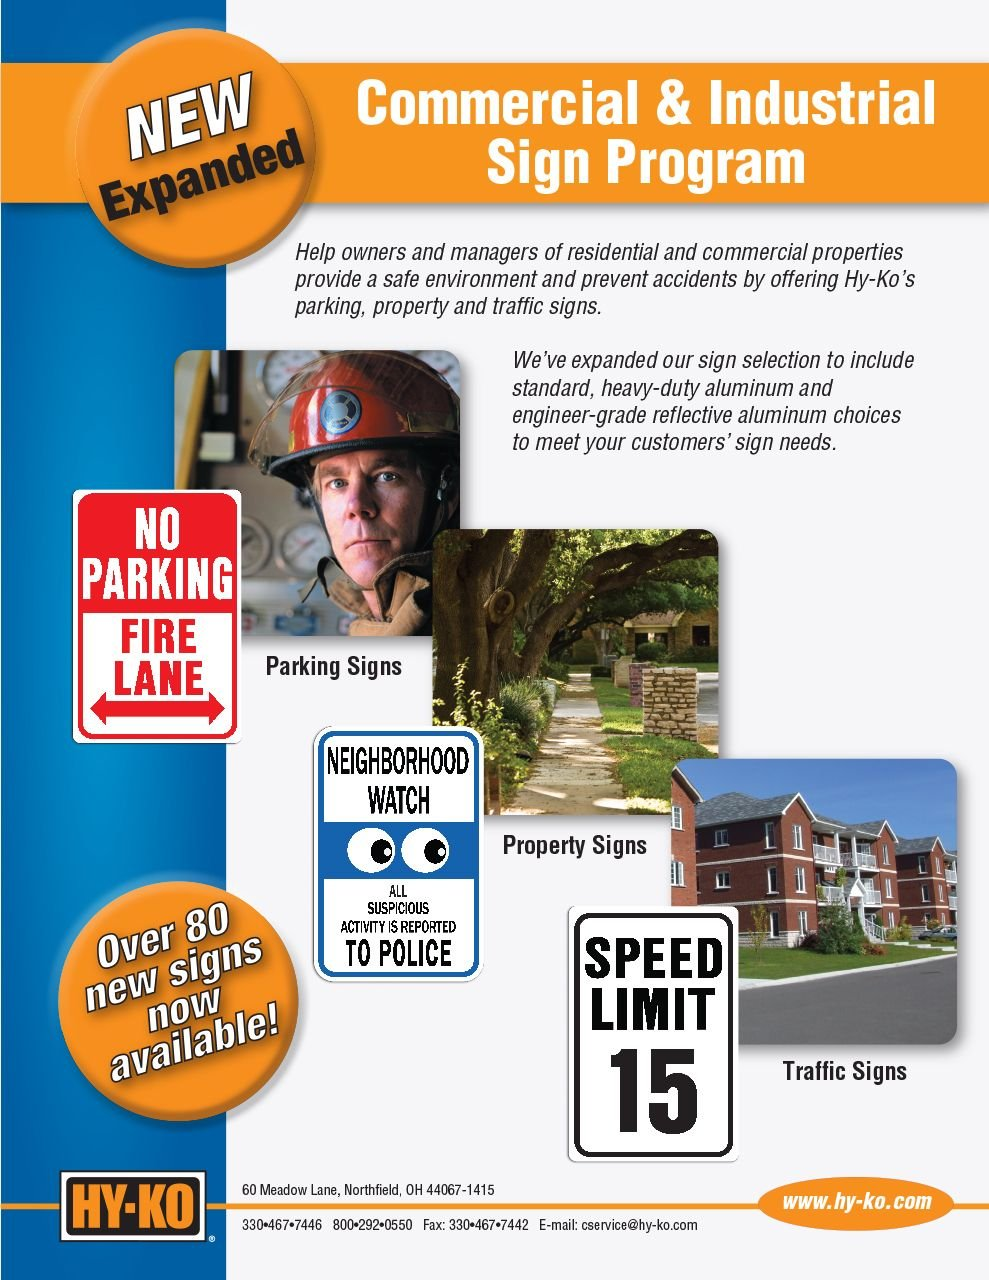 Commercial & Industrial Sign Program